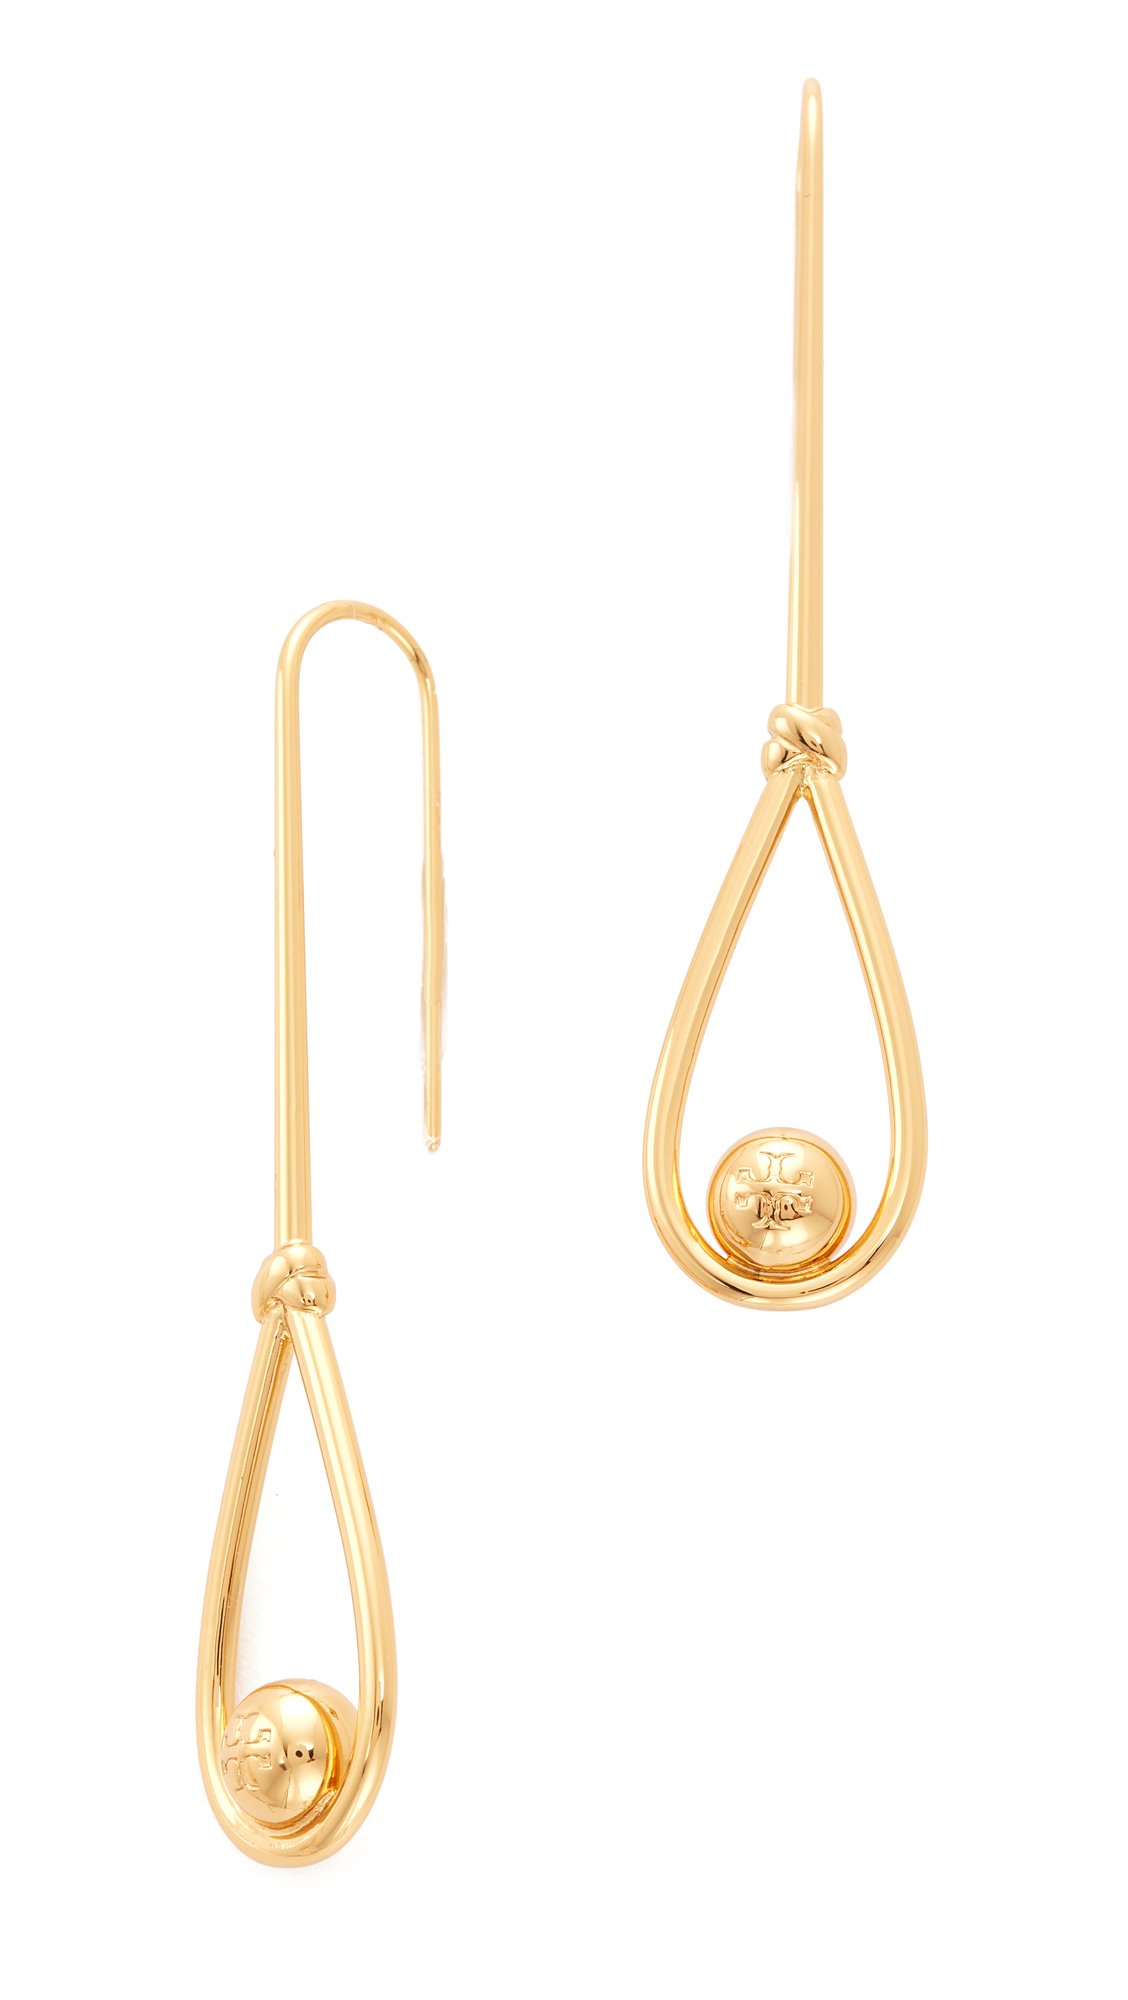 Tory Burch Logo Loop Linear Earrings - Tory Gold